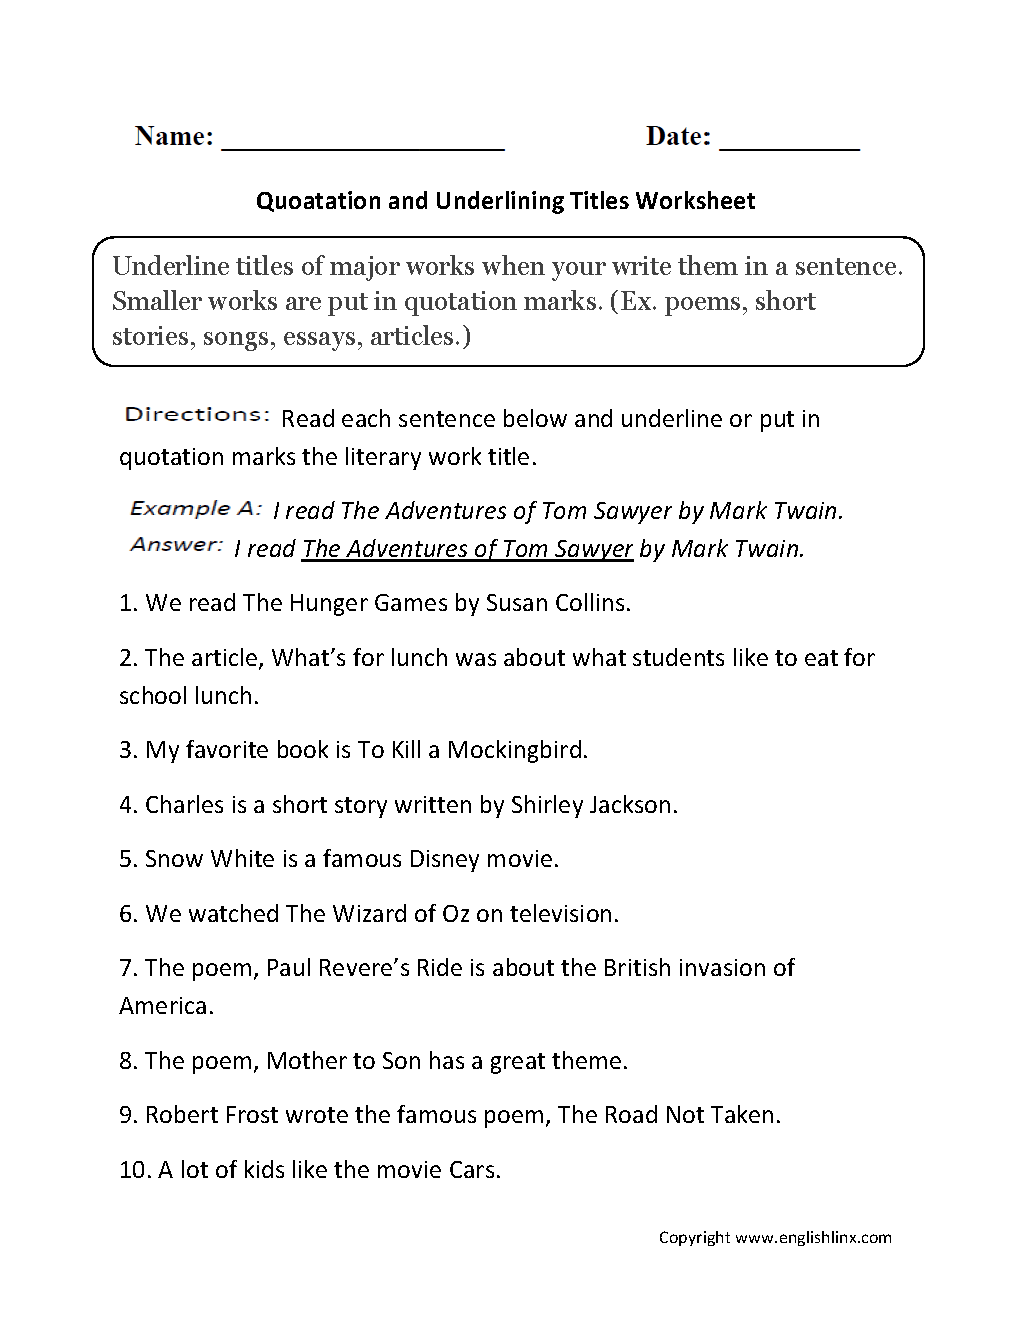 worksheet Quotations Worksheet grammar mechanics worksheets italics and underlining quotation titles worksheets